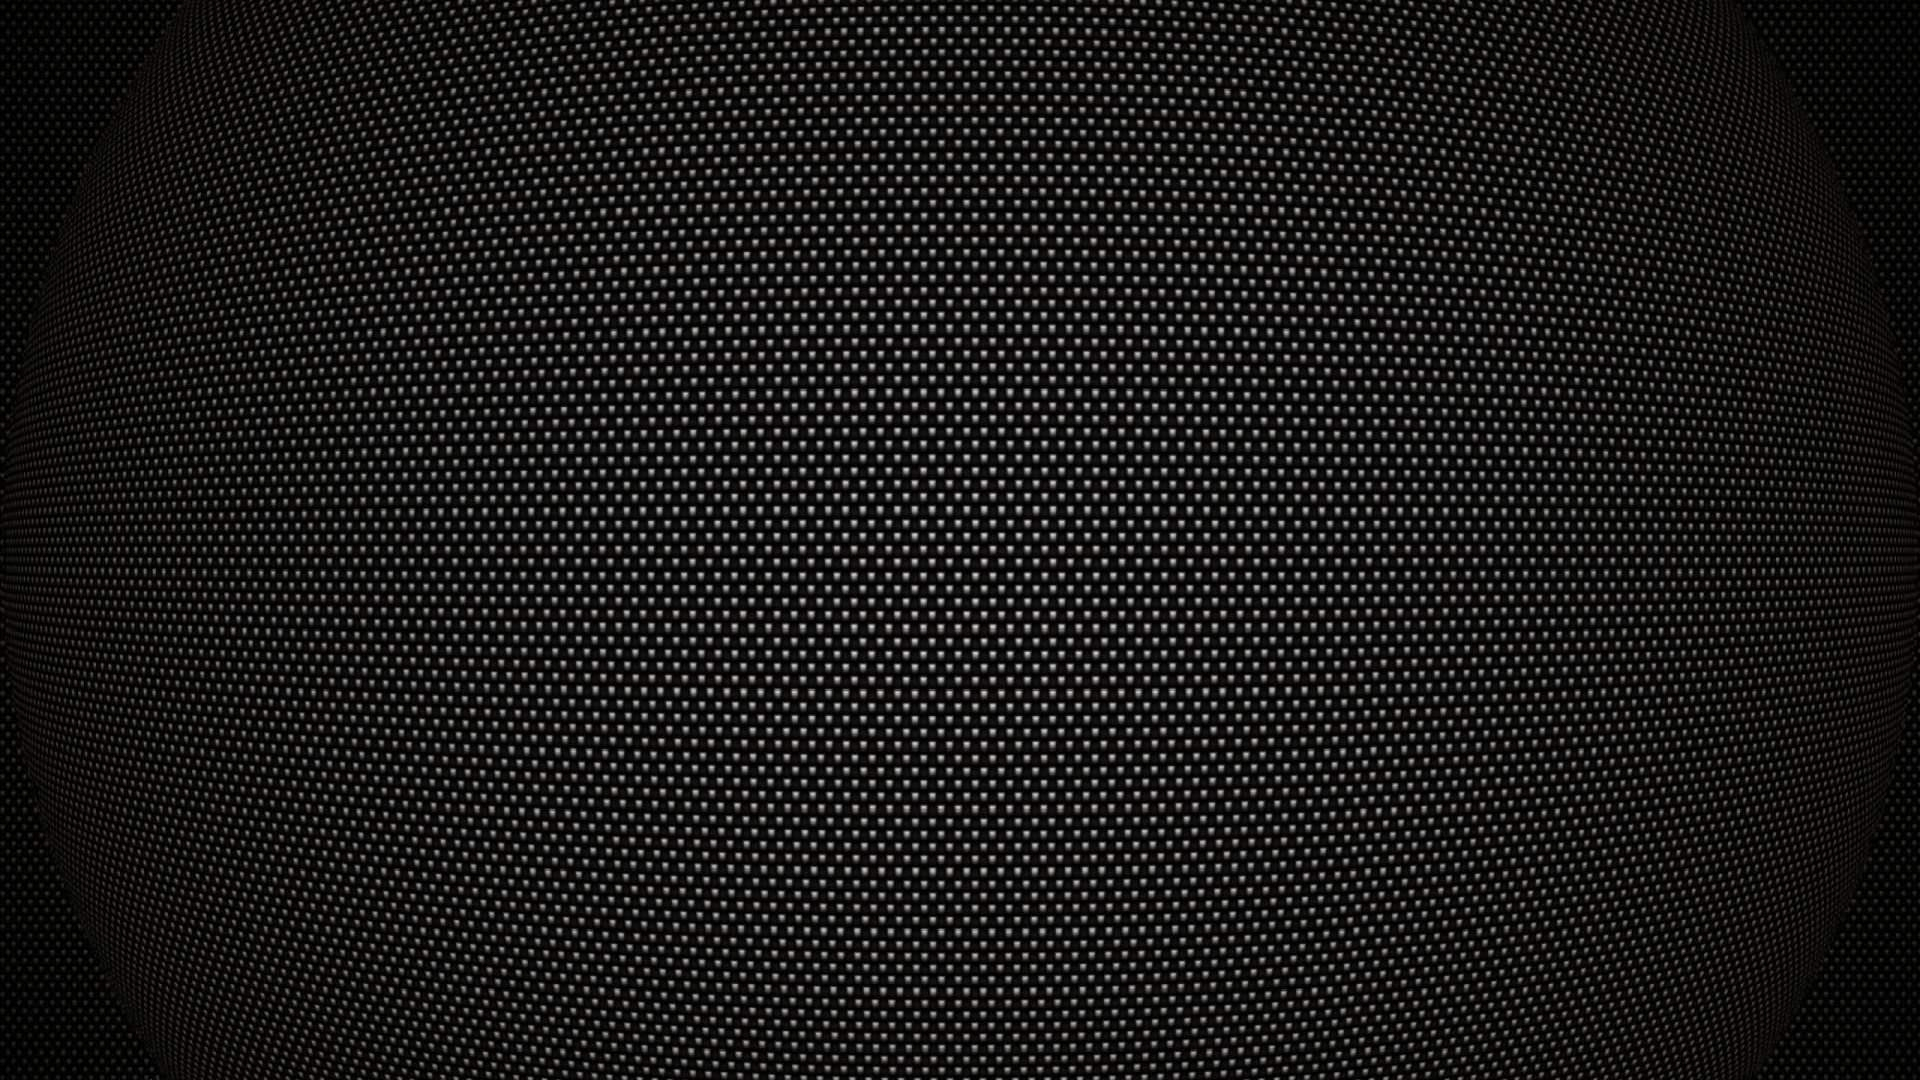 Black Dots  Plain Background